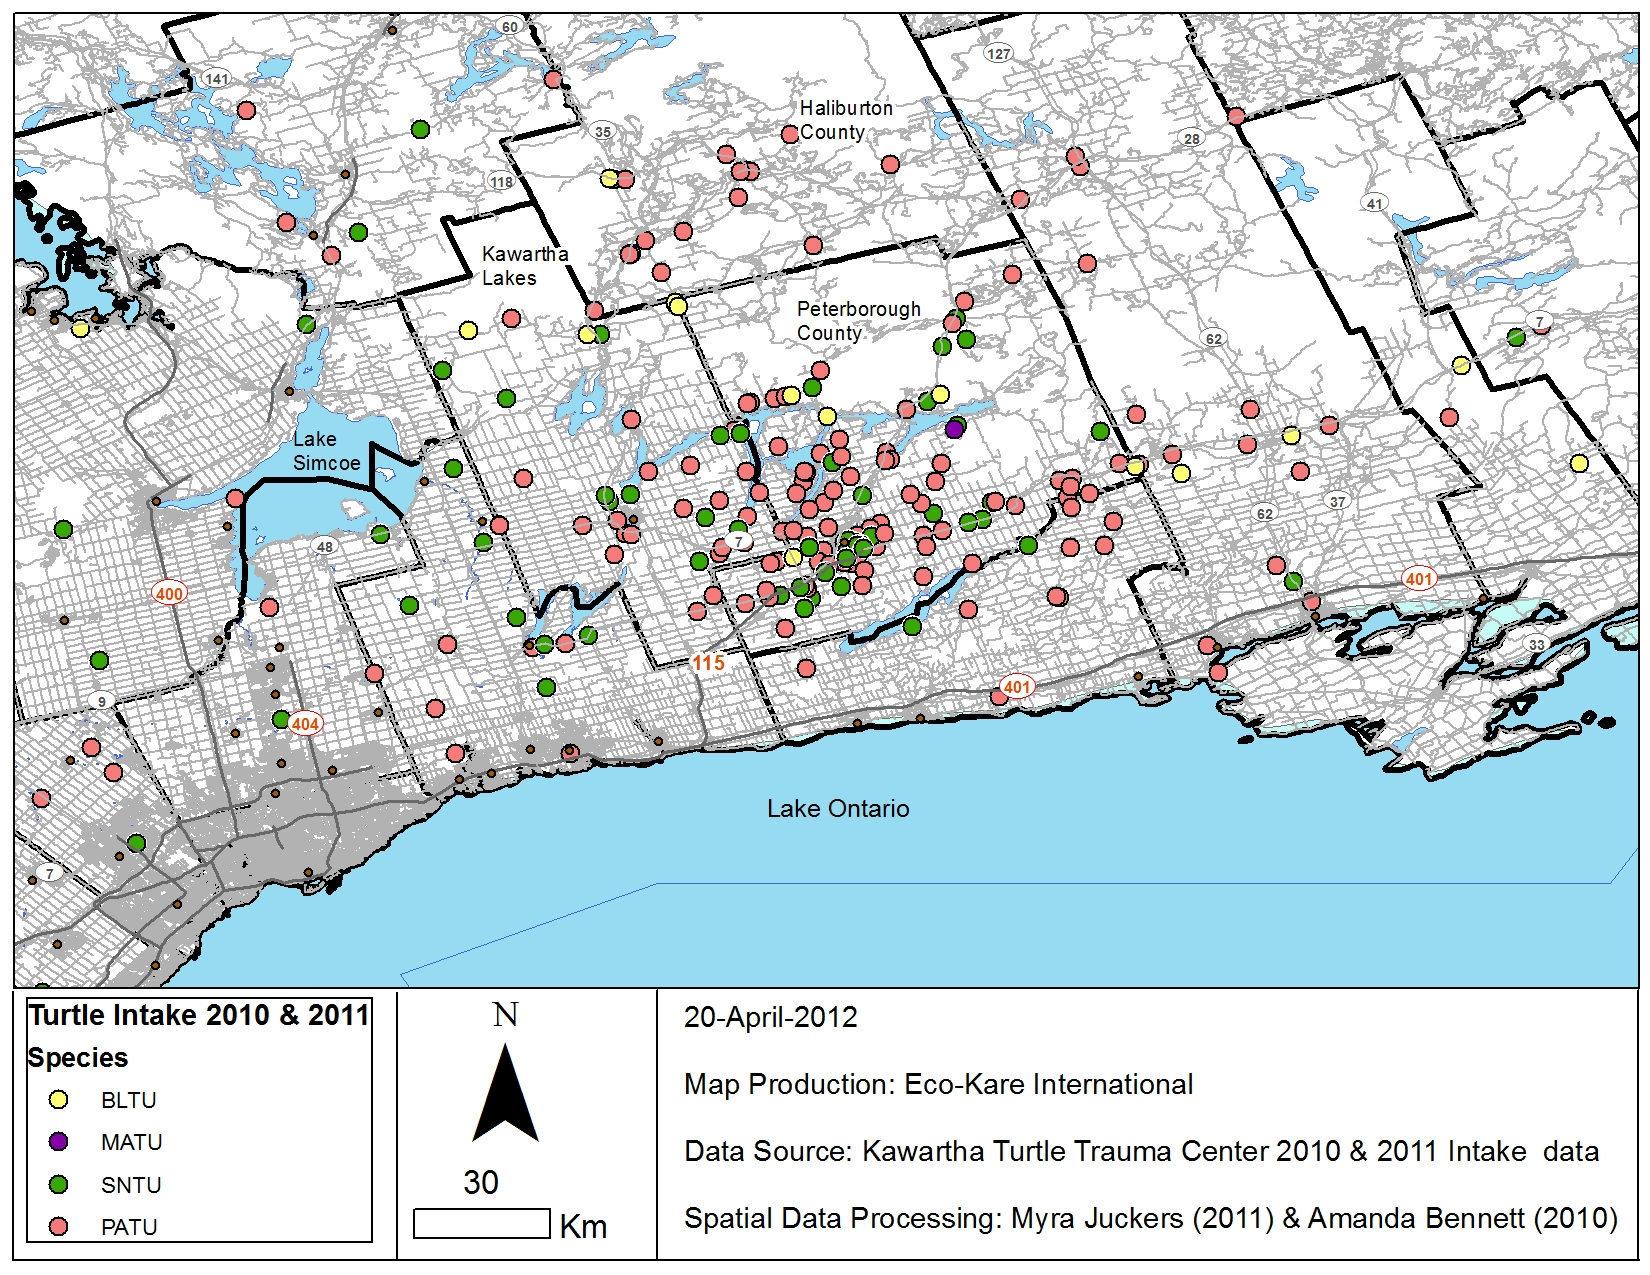 Map of the injured turtle locations in the Kawarthas